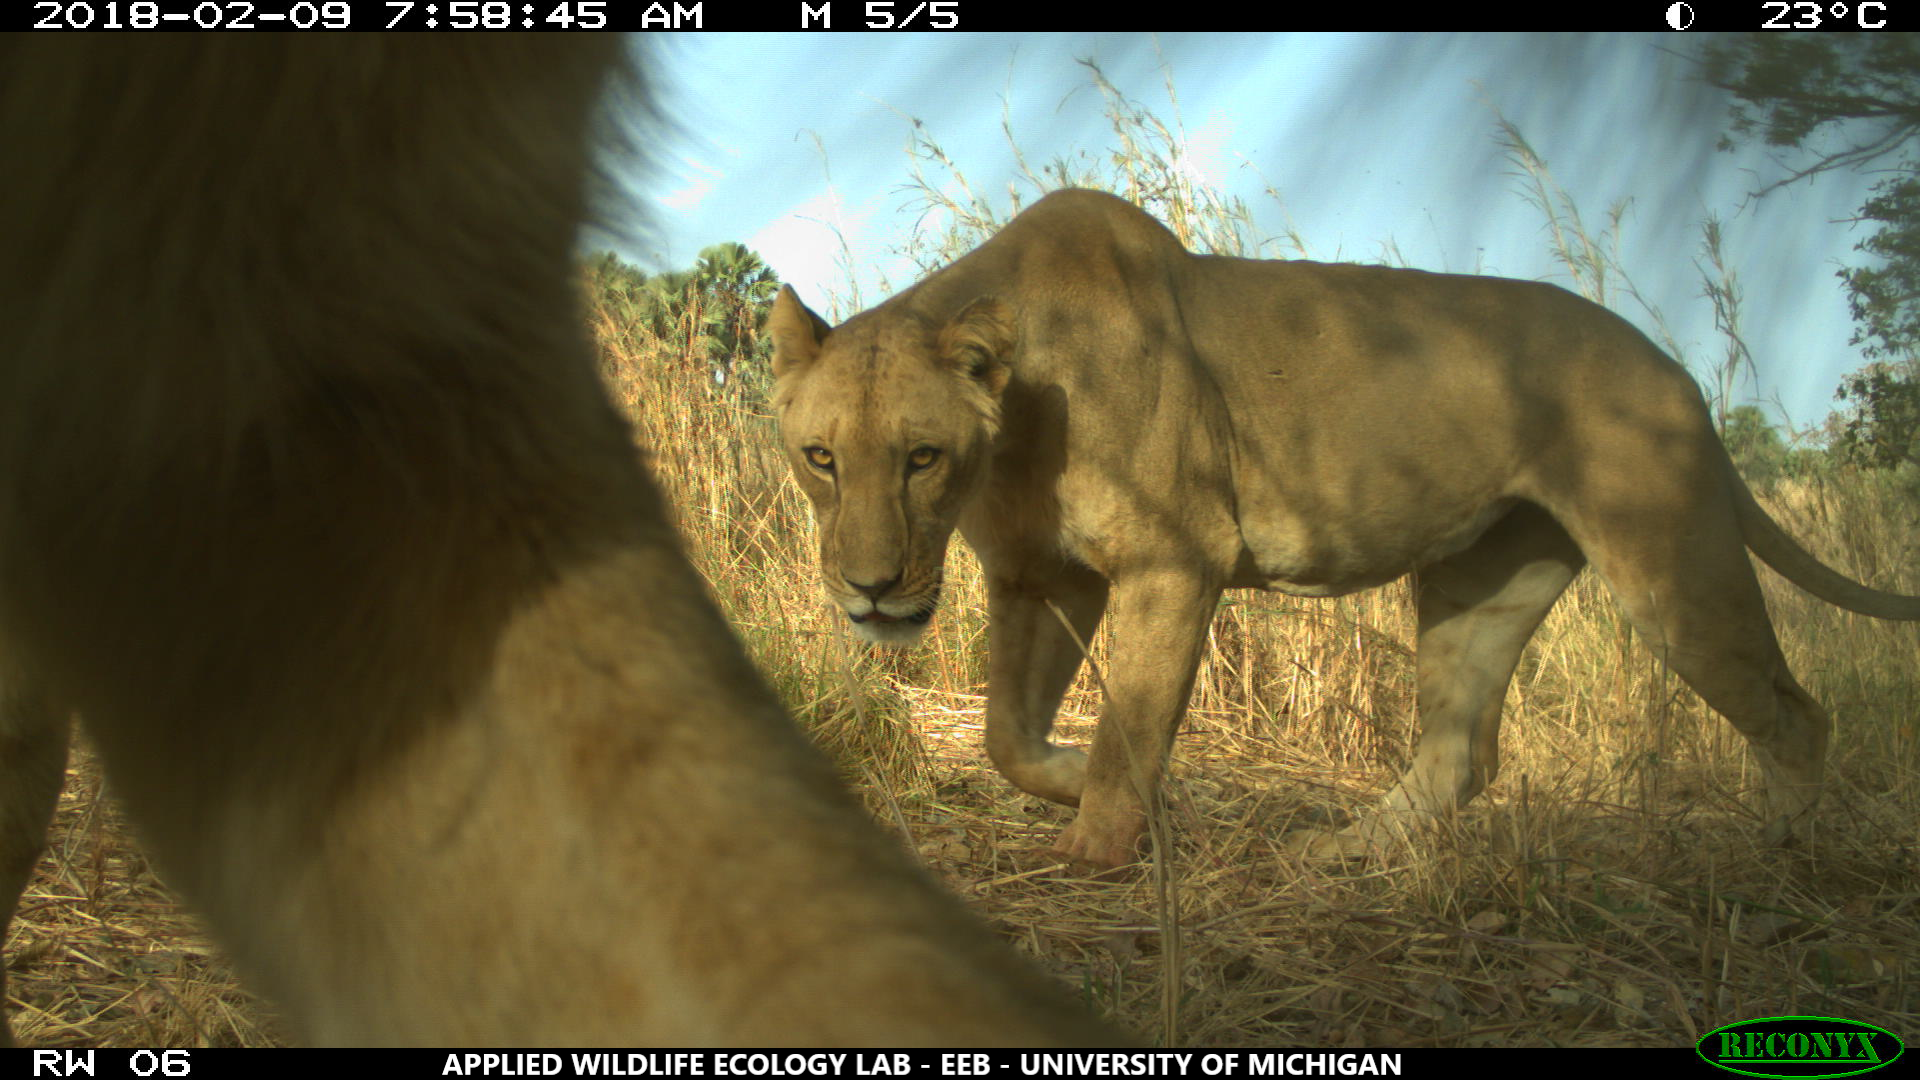 A female West African lion in Arly National Park, part of the W-Arly-Pendjari protected area complex. University of Michigan researchers used 238 motion-activated cameras to capture wildlife images across 5,000 square miles within three WAP Complex national parks and 11 hunting concessions. Image credit: University of Michigan Applied Wildlife Ecology Lab.